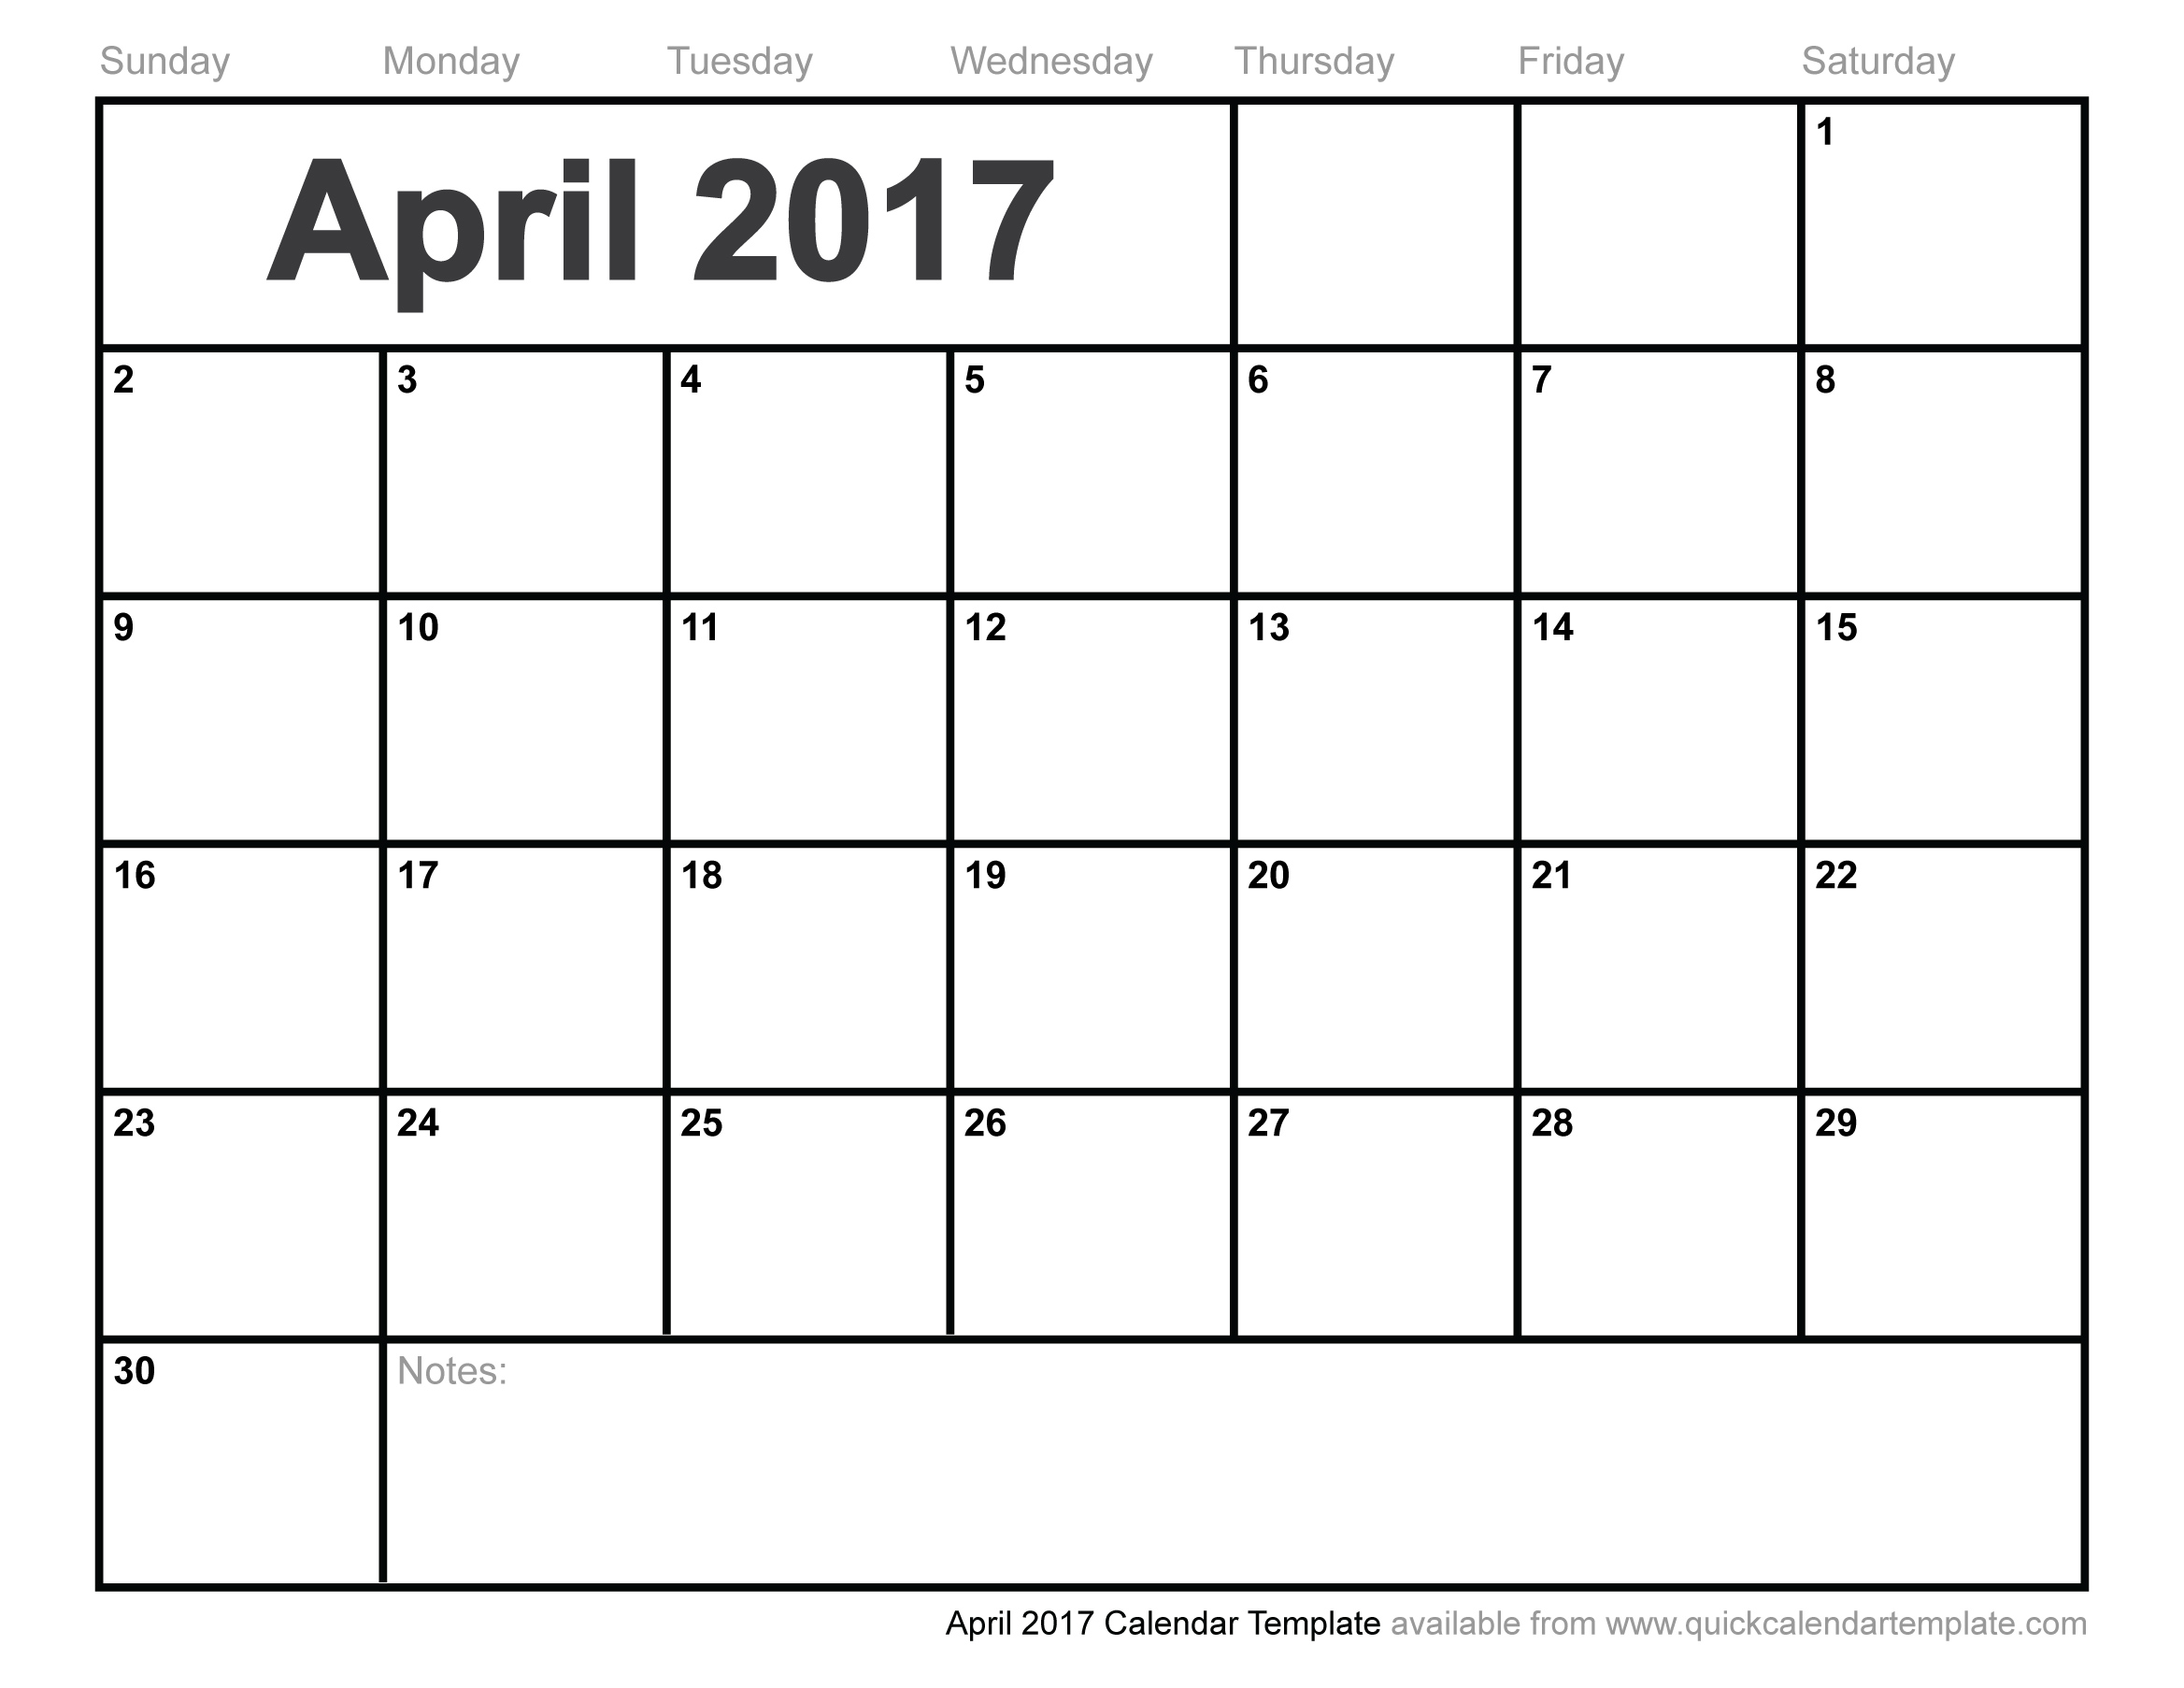 April 2017 Calendar Cute | printable calendar templates